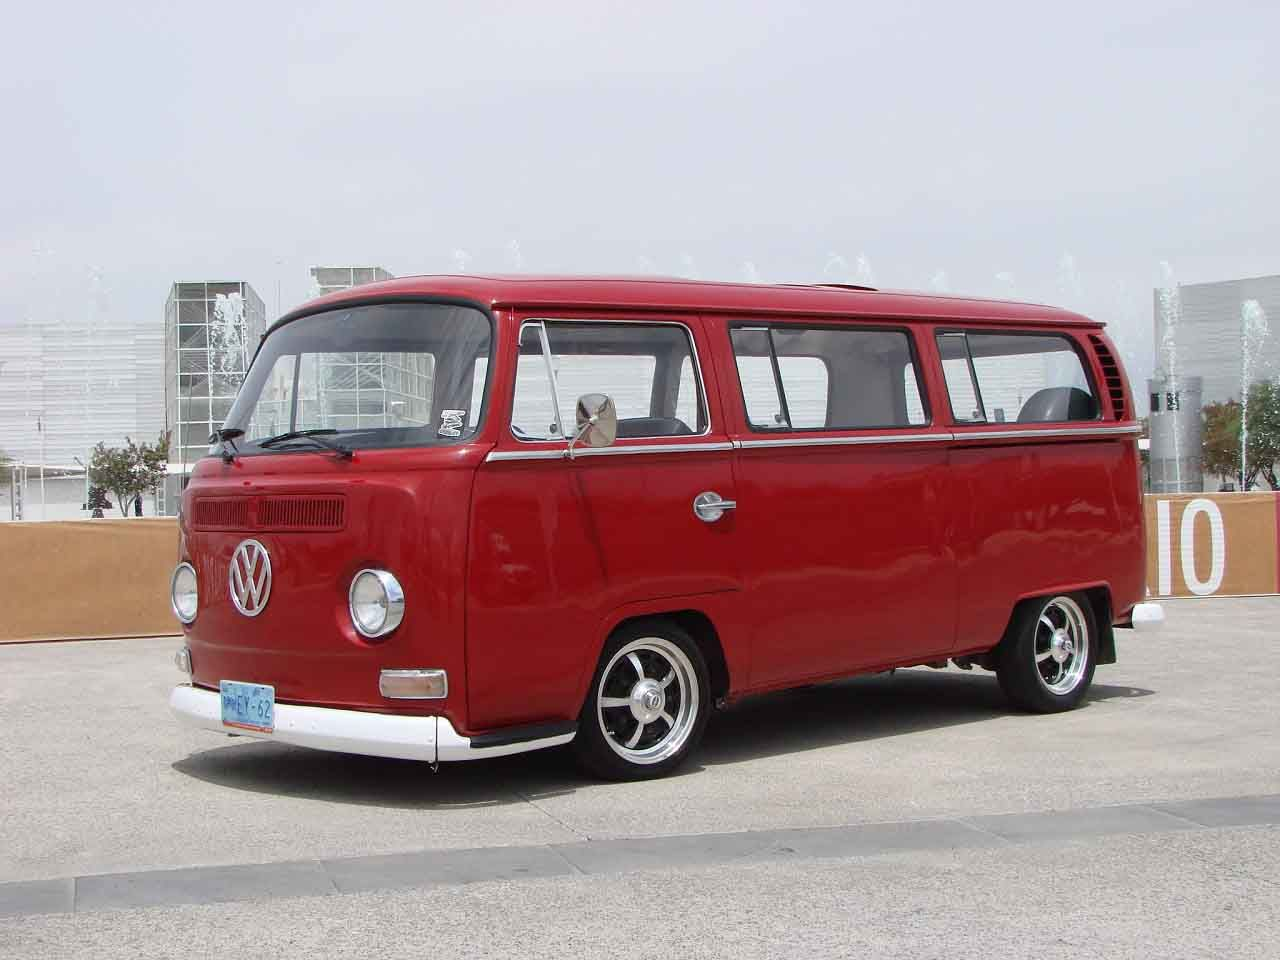 volkswagen combi 1969 combis pinterest volkswagen vw and vw bus. Black Bedroom Furniture Sets. Home Design Ideas